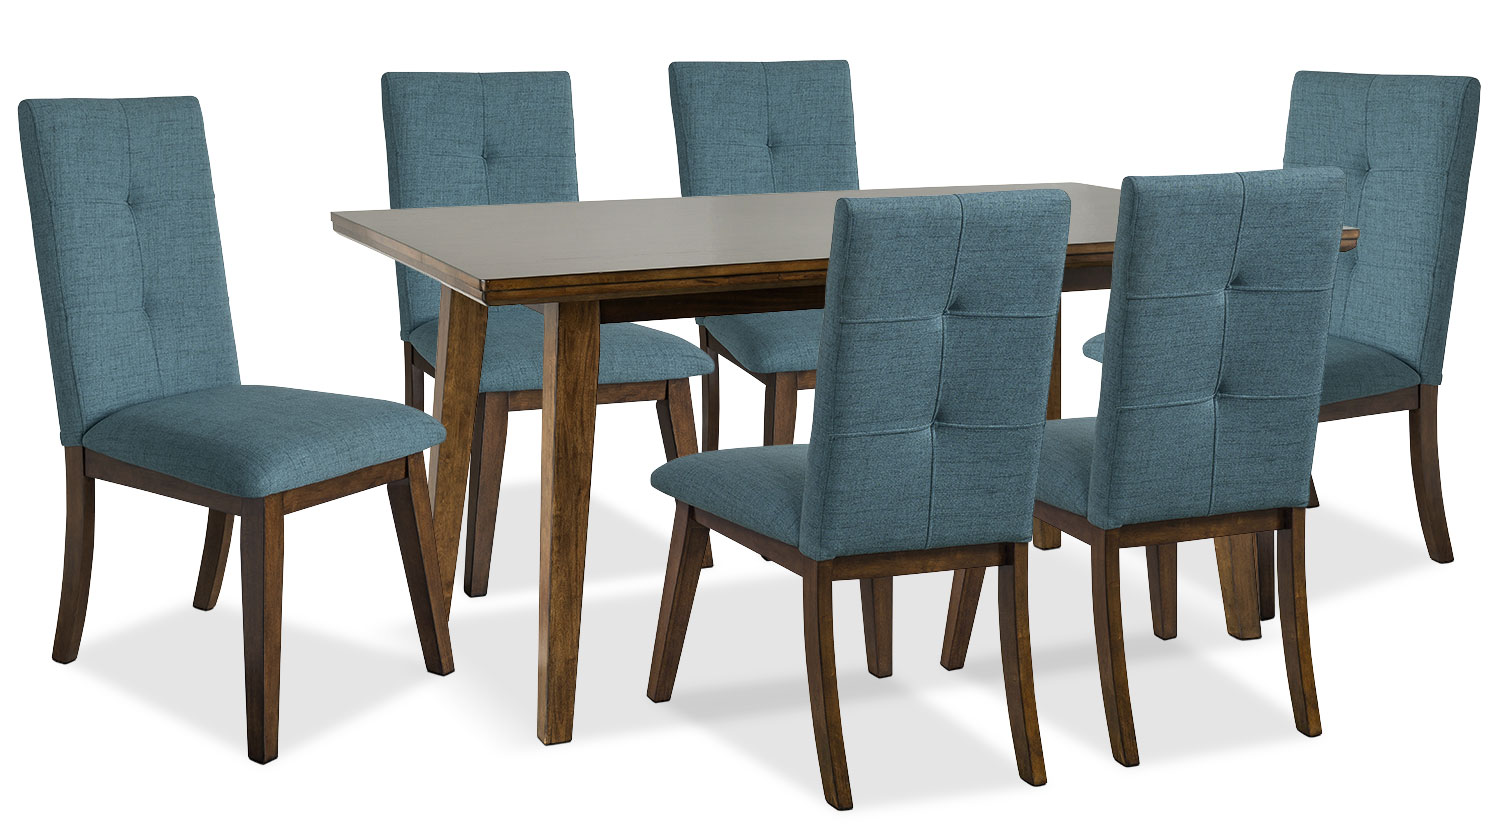 Dining Room Furniture - Chelsea 7-Piece Dining Package with Aqua Chairs